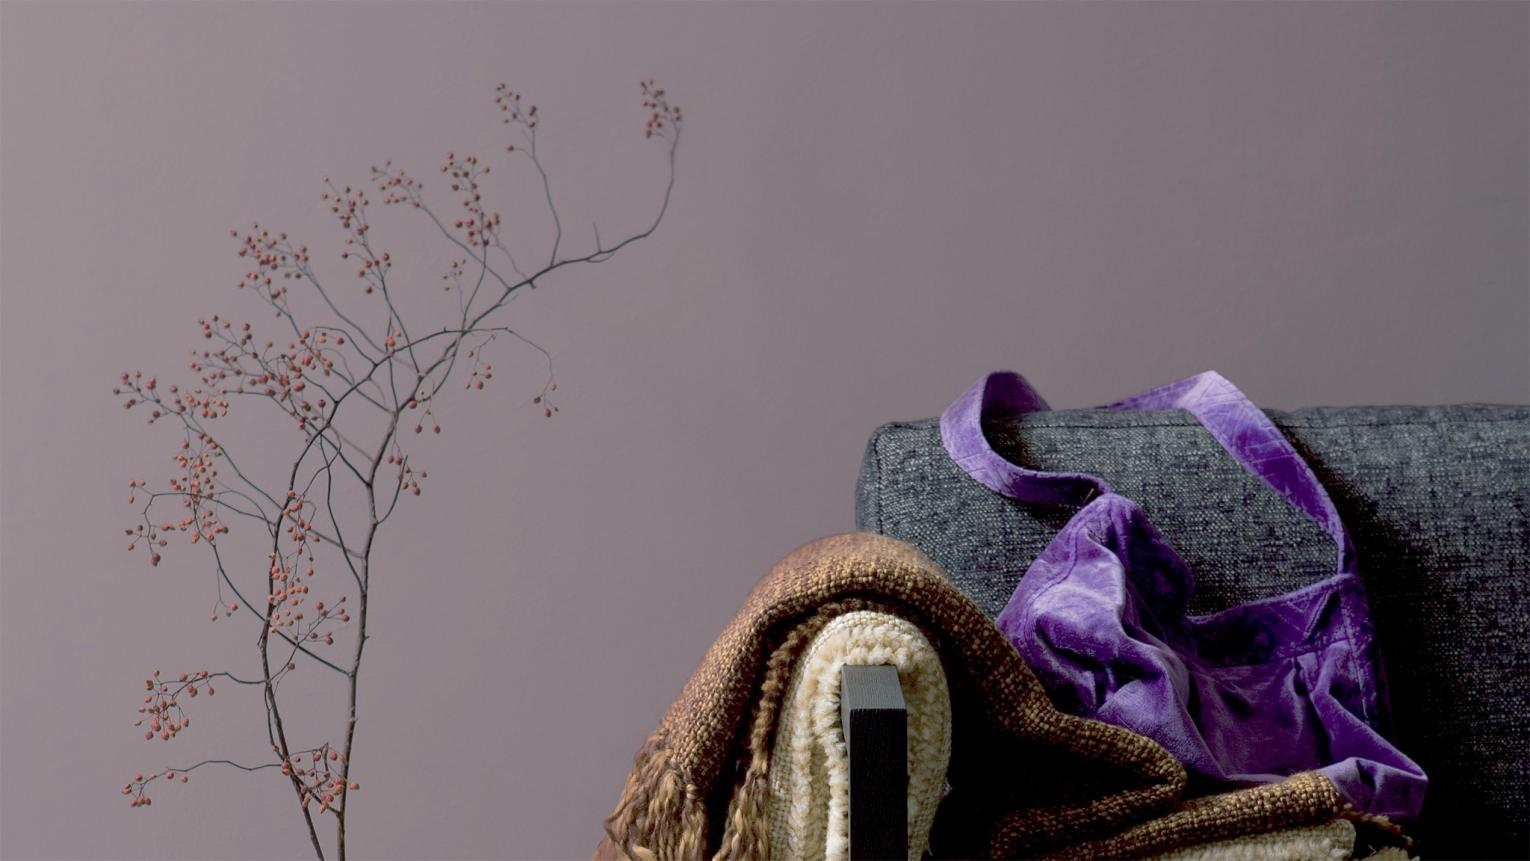 Combine soft purple with cool neutrals for cosy elegance.